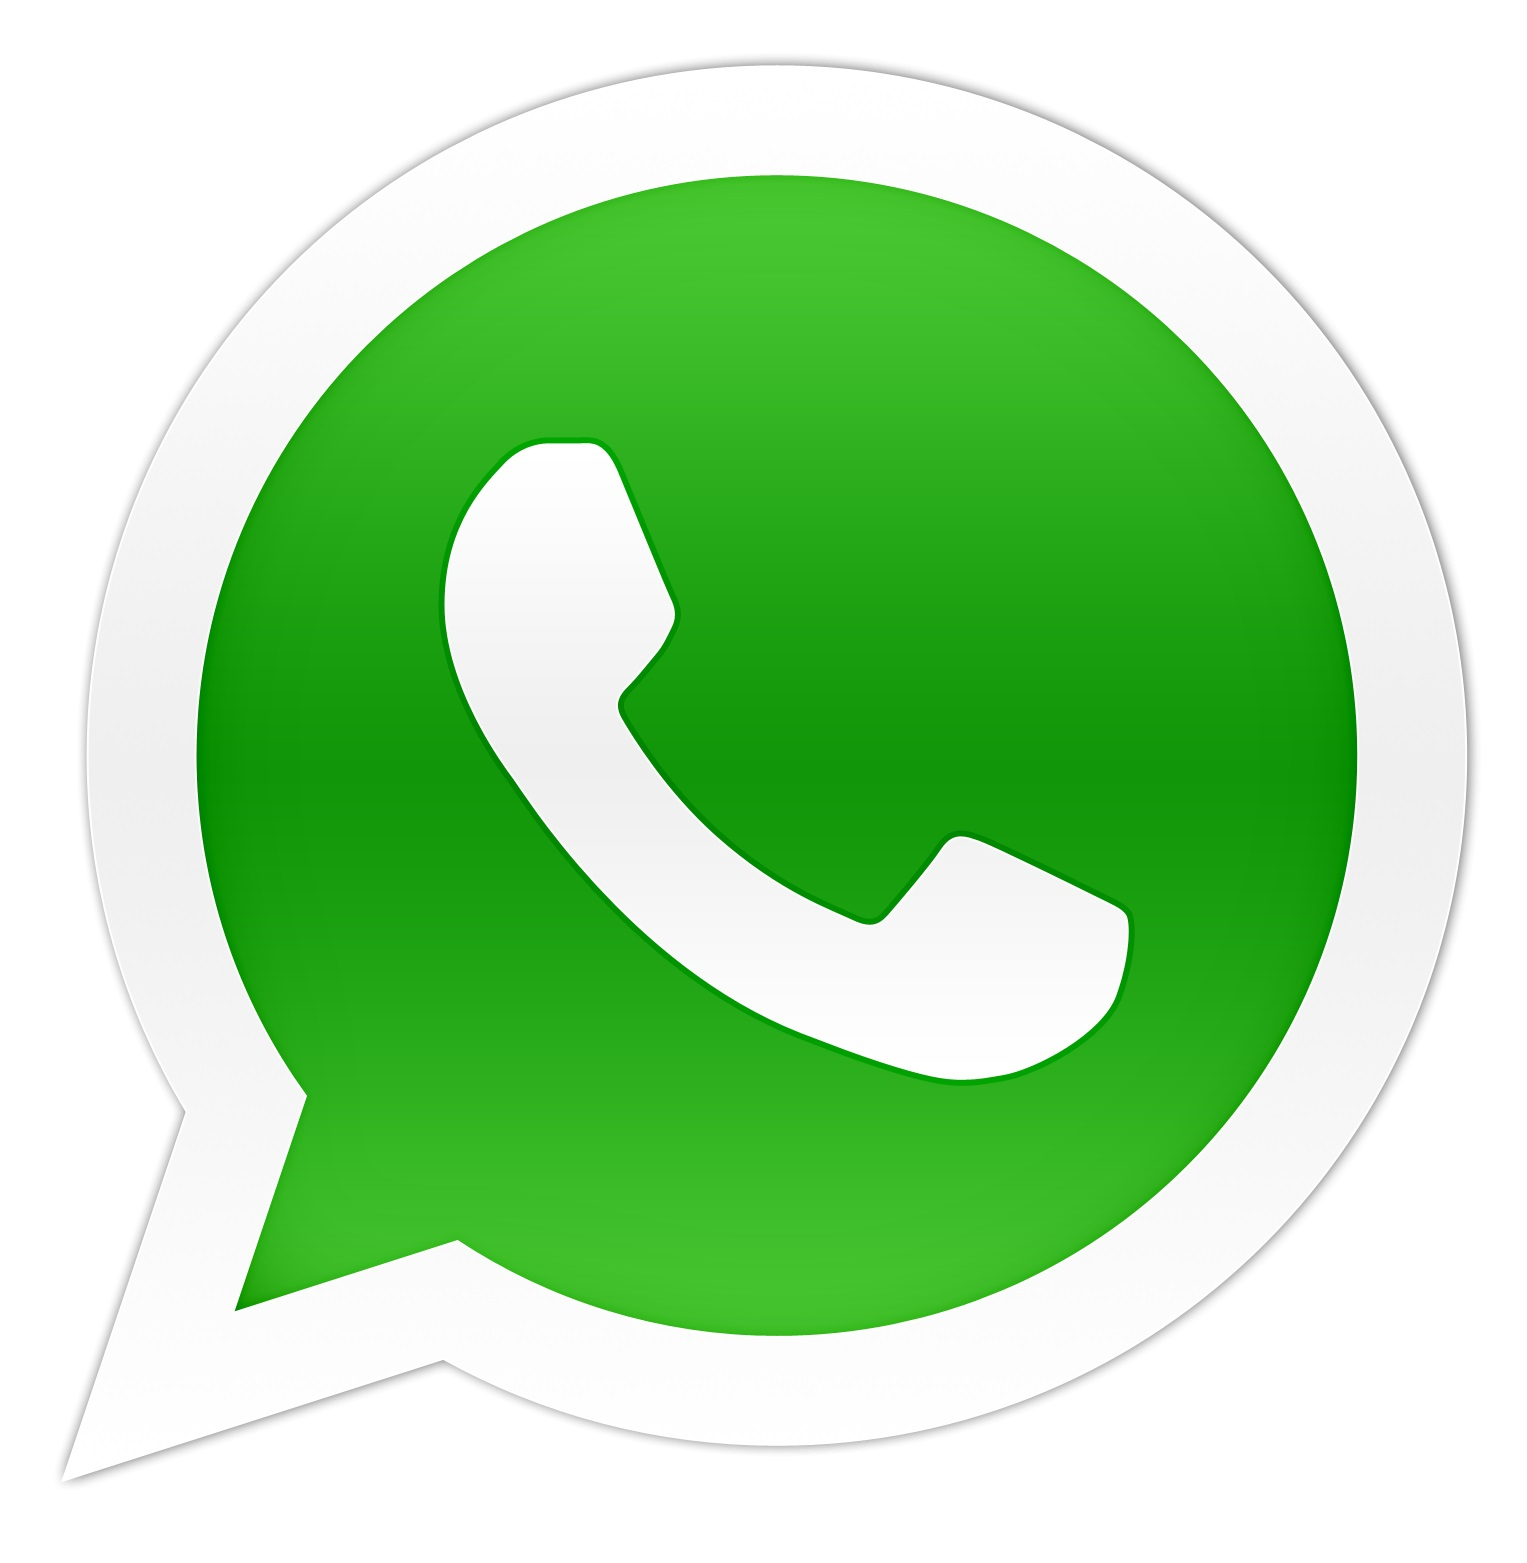 Sampex agora atende via Whatsapp